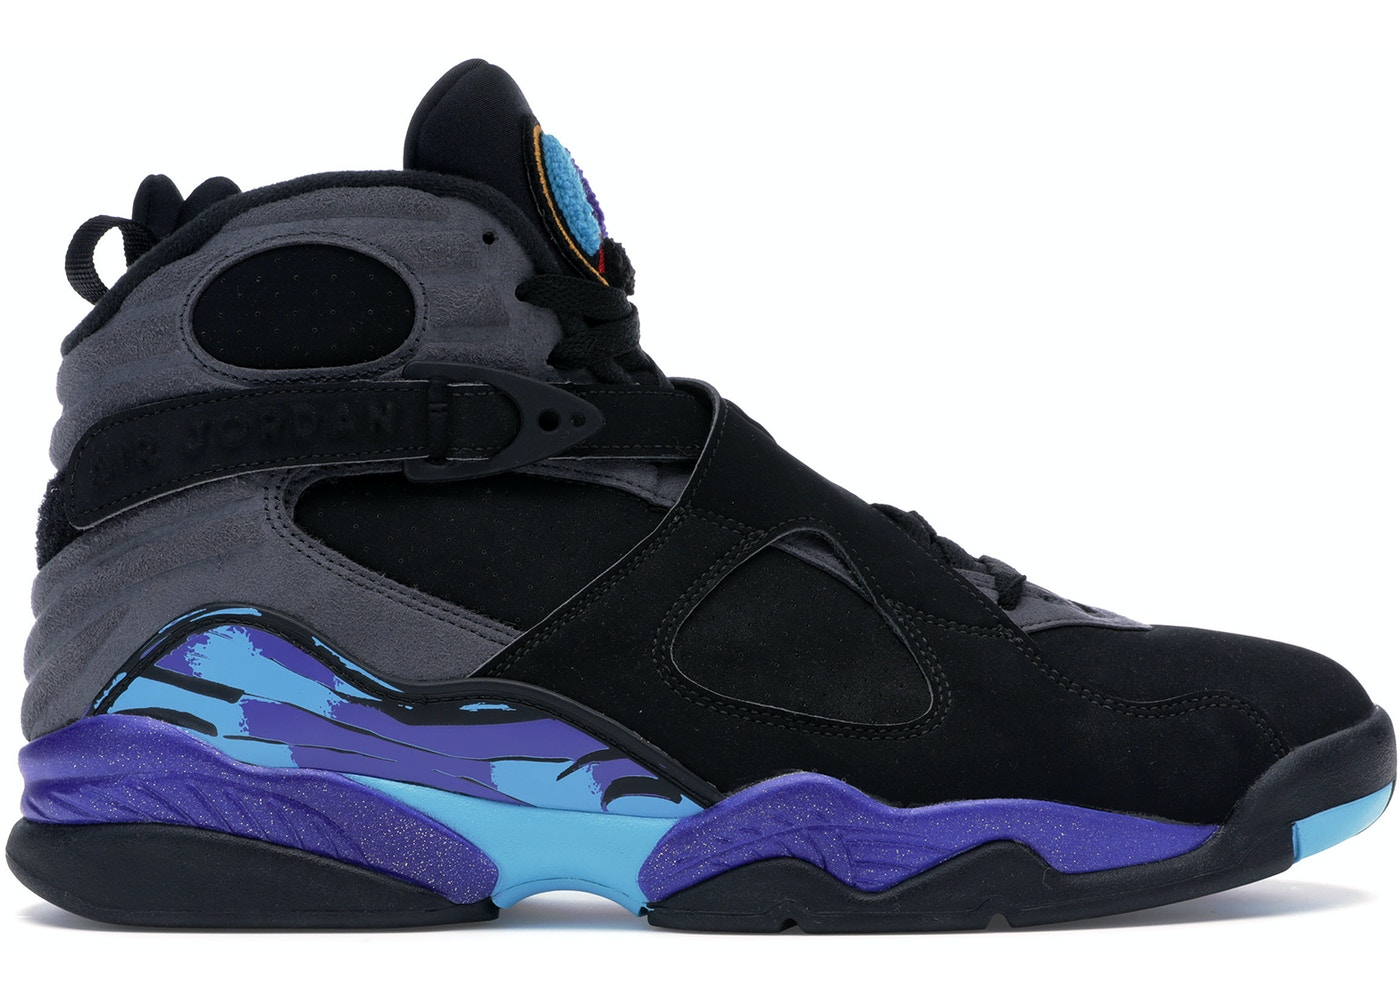 cheap for discount f3c9b 194fd Jordan 8 Retro Aqua (2015) - 305381-025